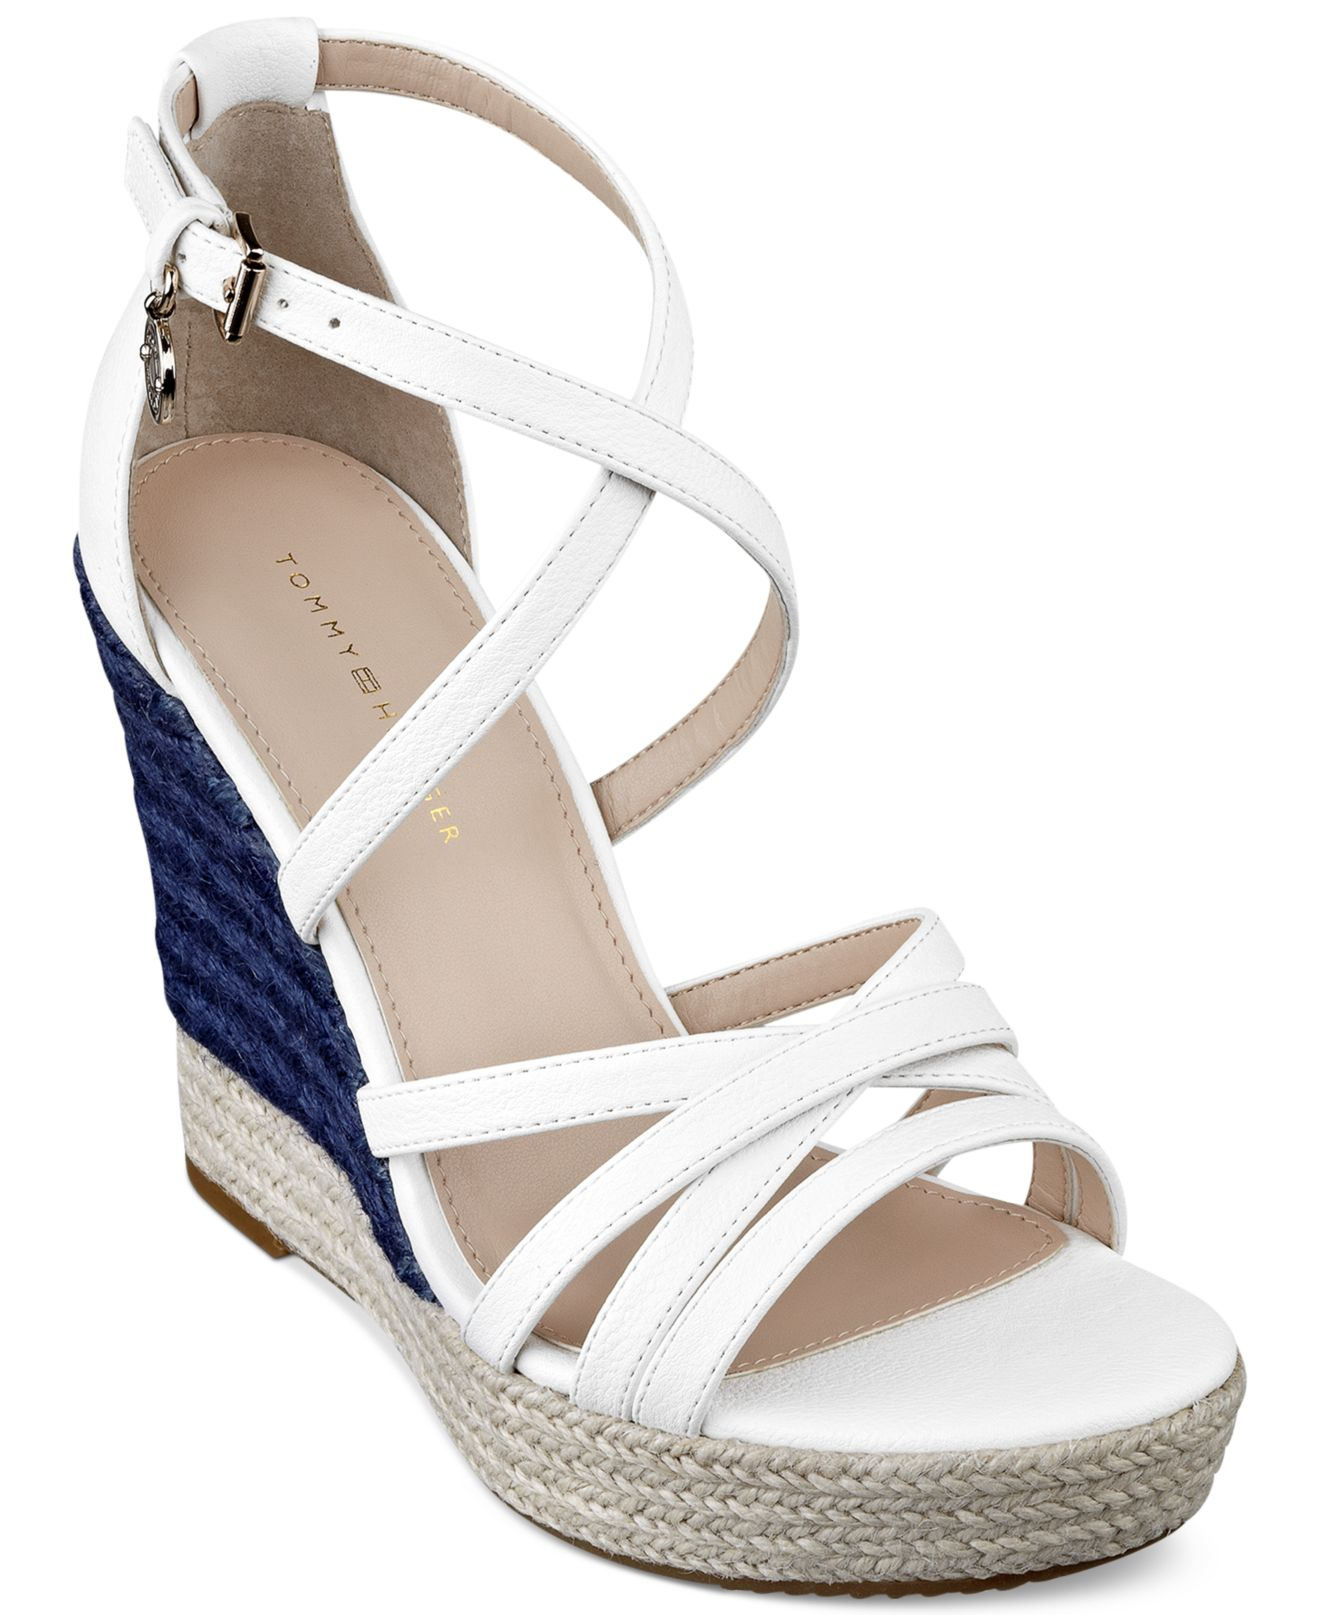 69c00b988c514c Lyst - Tommy Hilfiger Women S Venitia Platform Wedge Sandals in White